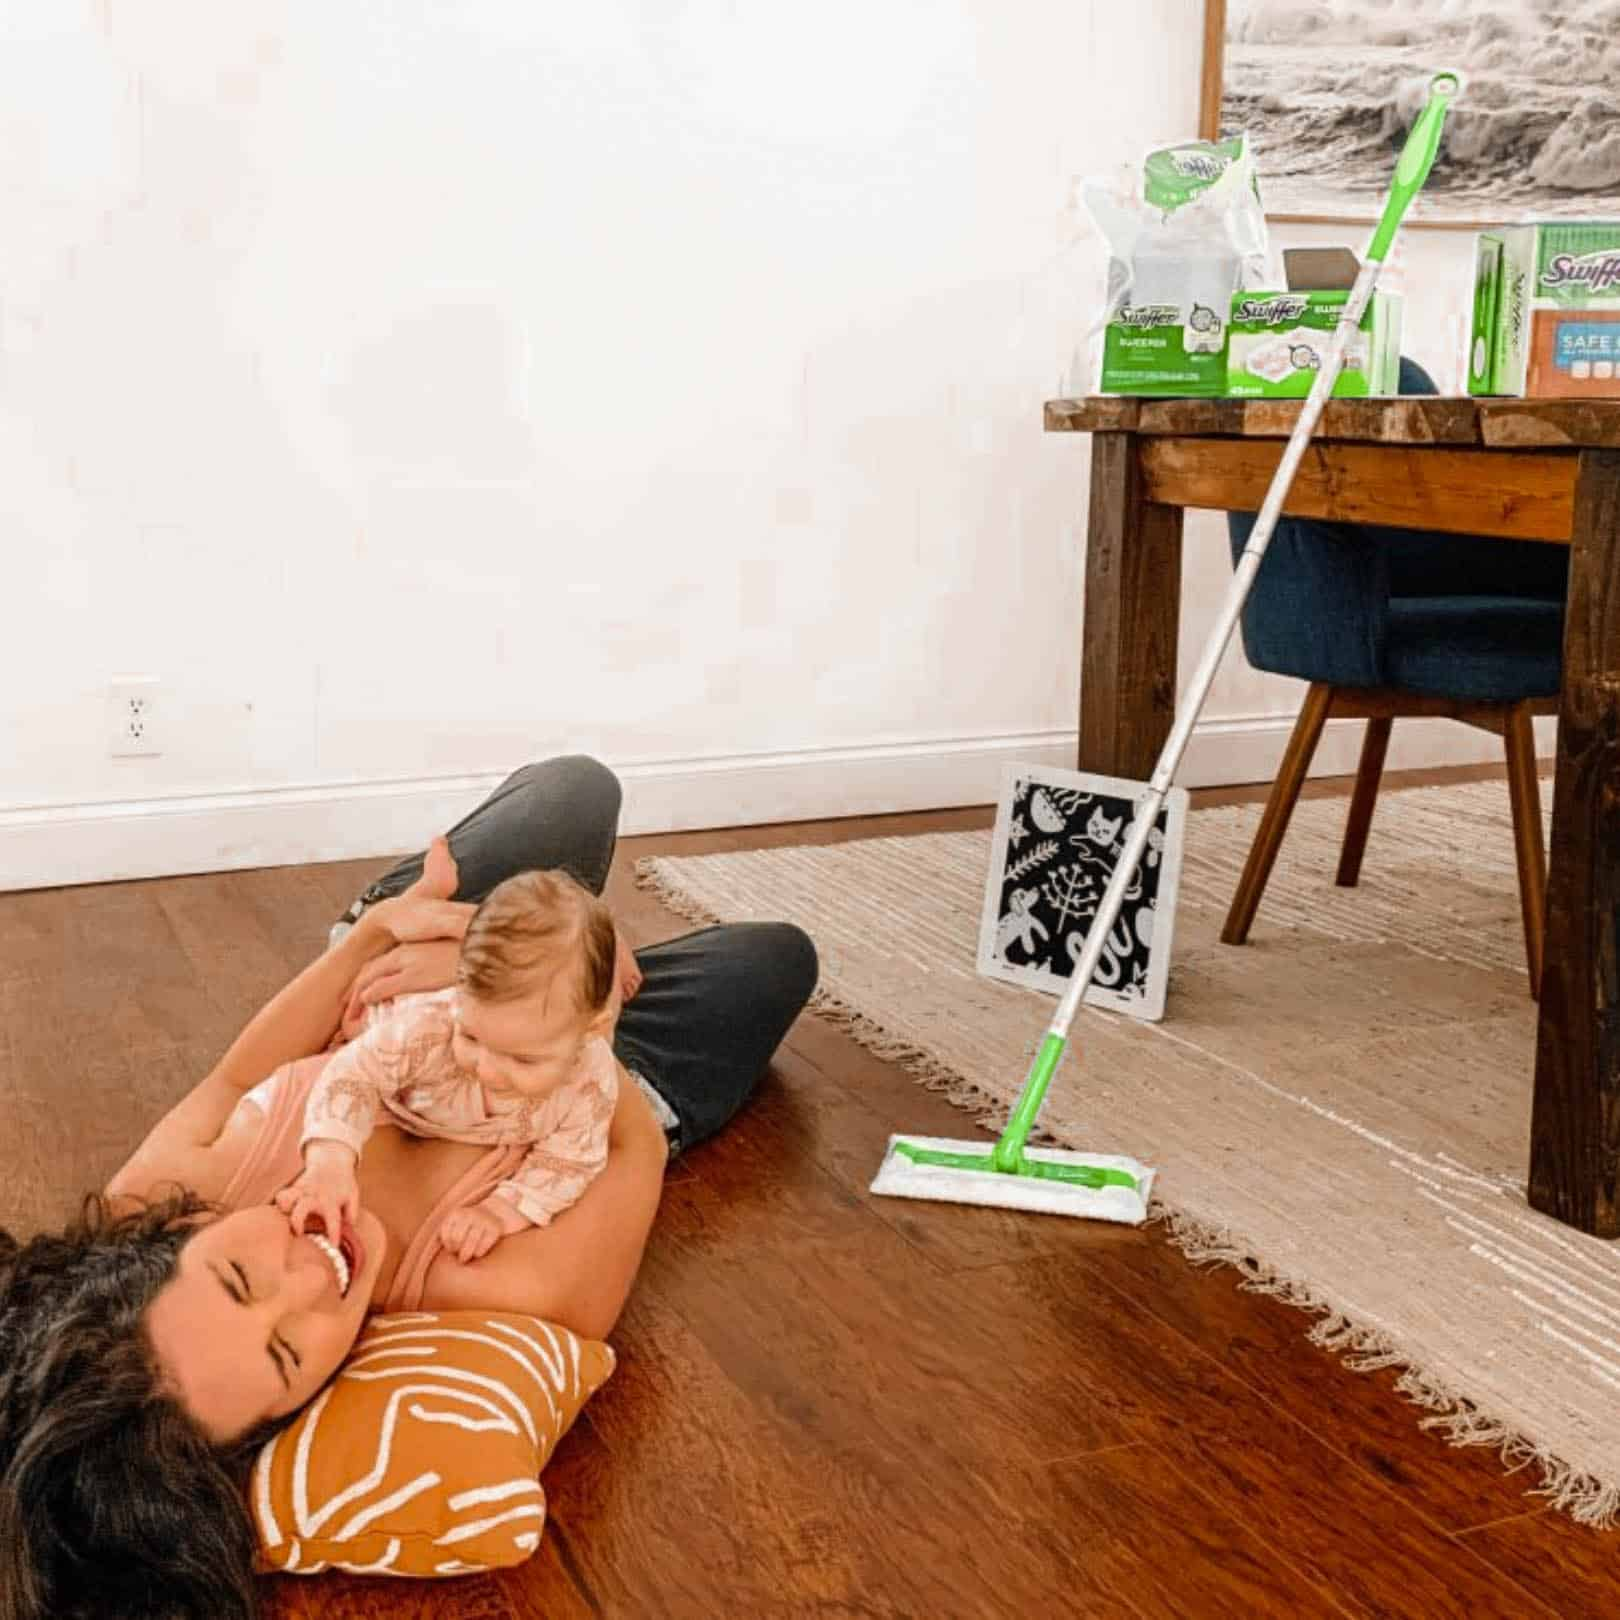 tummy time activities for baby with swiffer